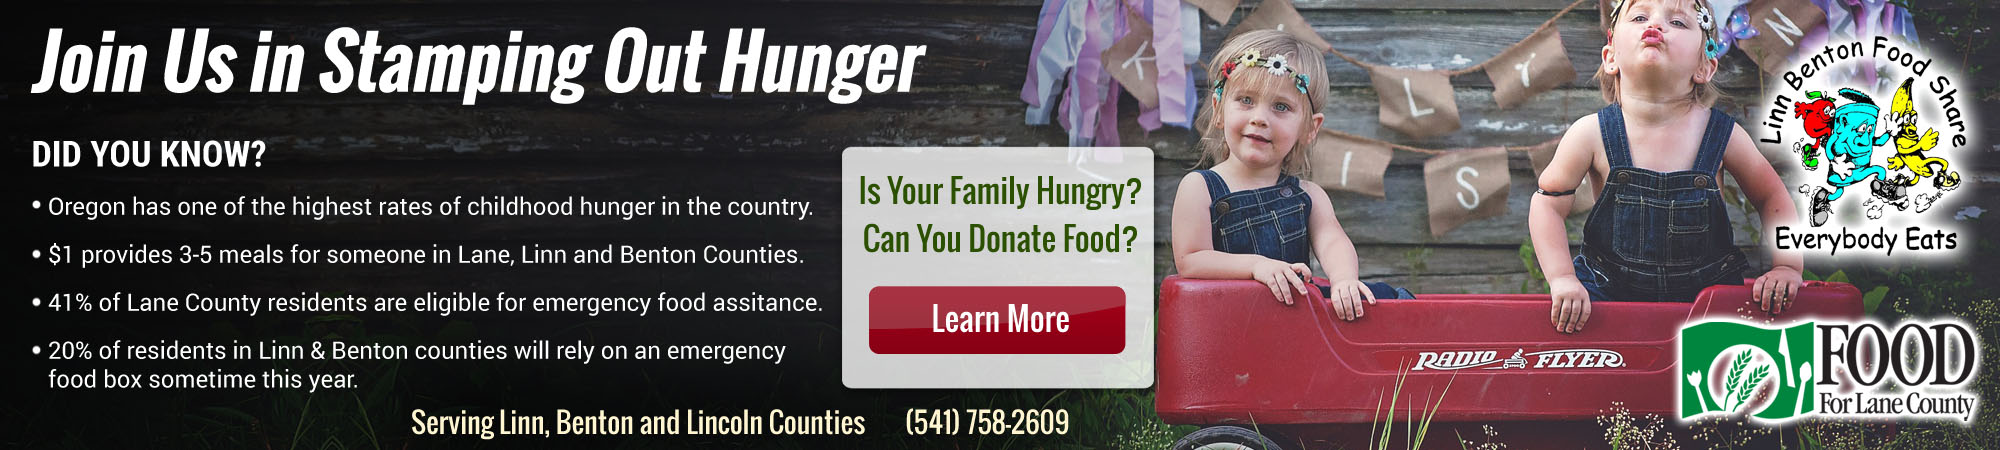 Hendrix Heating & Air Conditioning Furnace repair service of Corvallis OR wants to stamp out hunger!